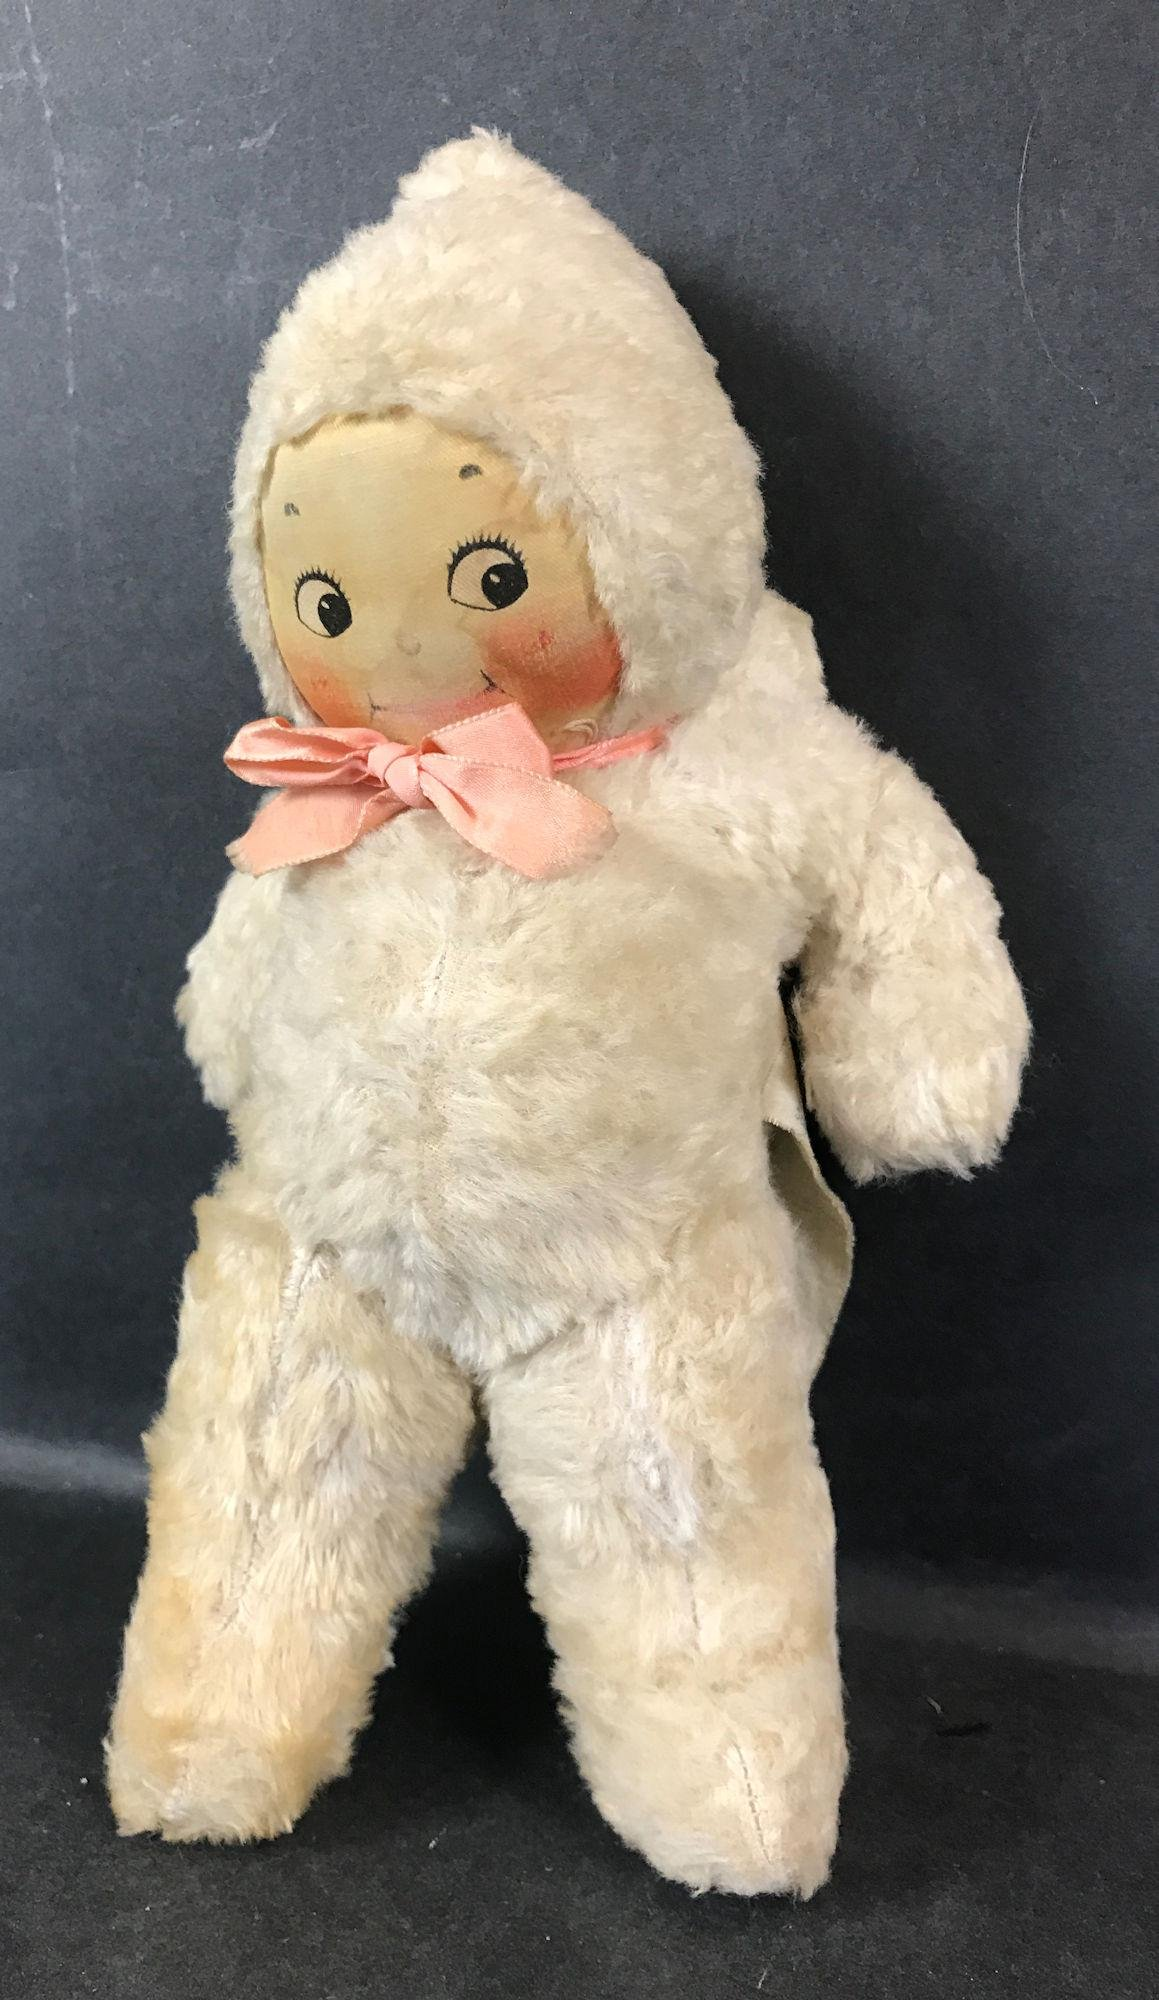 CLOTH MASK FACE KEWPIE BY RICHARD KREUGER. UNJOINTED